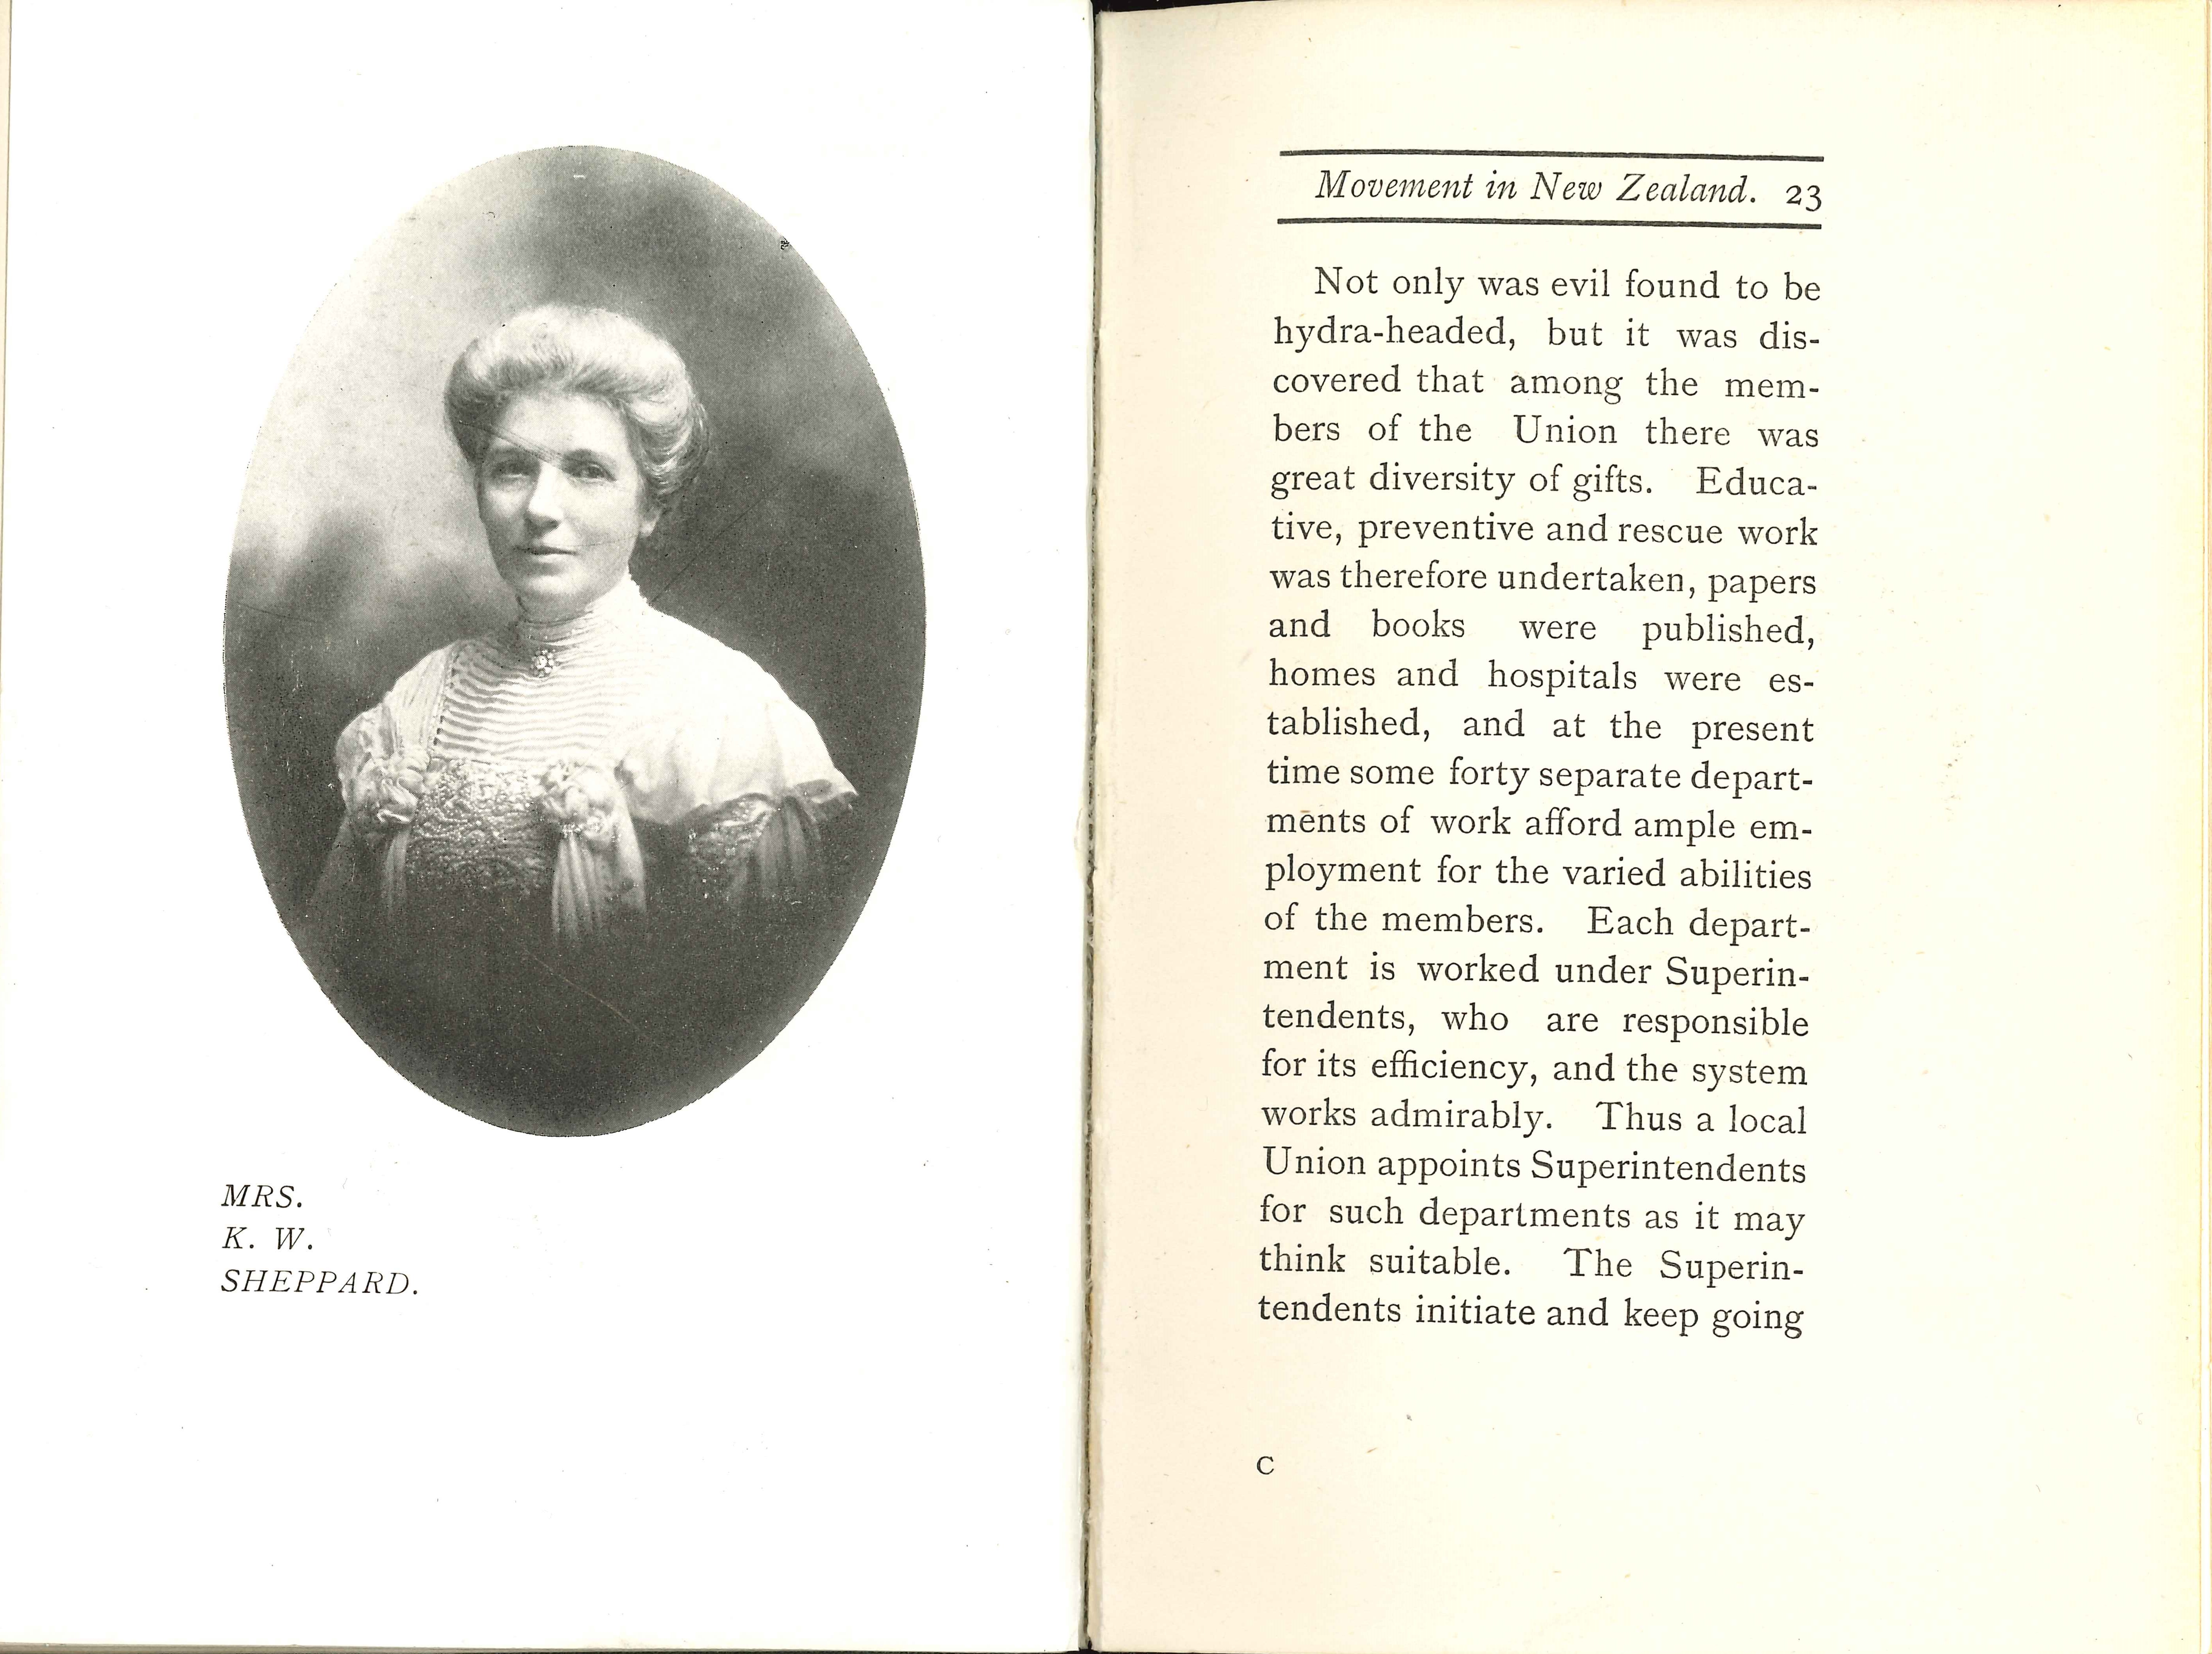 W. Sidney Smith. Outlines of the women's franchise movement in New Zealand. Christchurch: Whitcombe & Tombs, 1905.